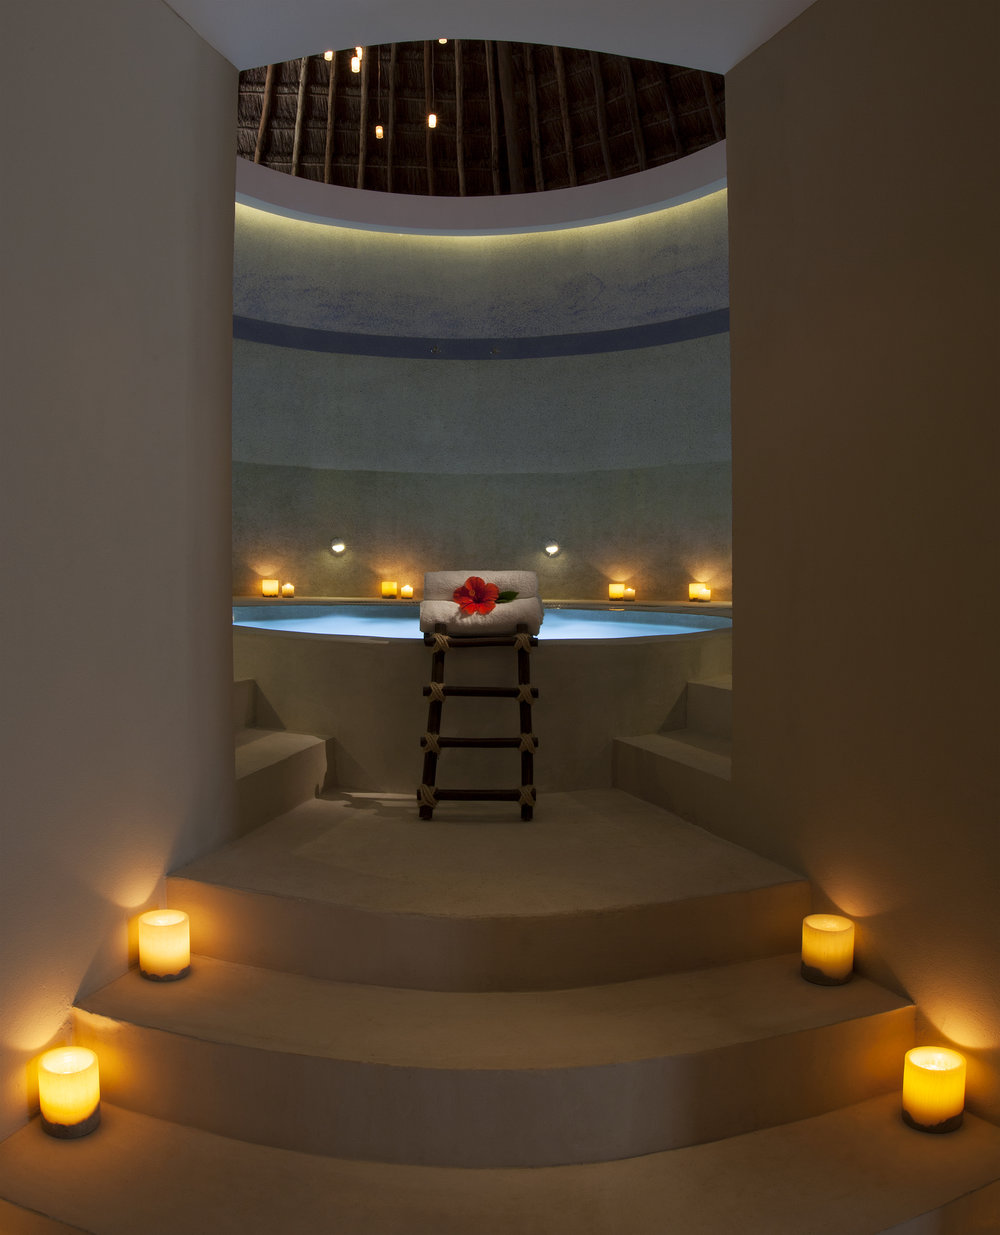 Spa whirlpool at Revive Spa.